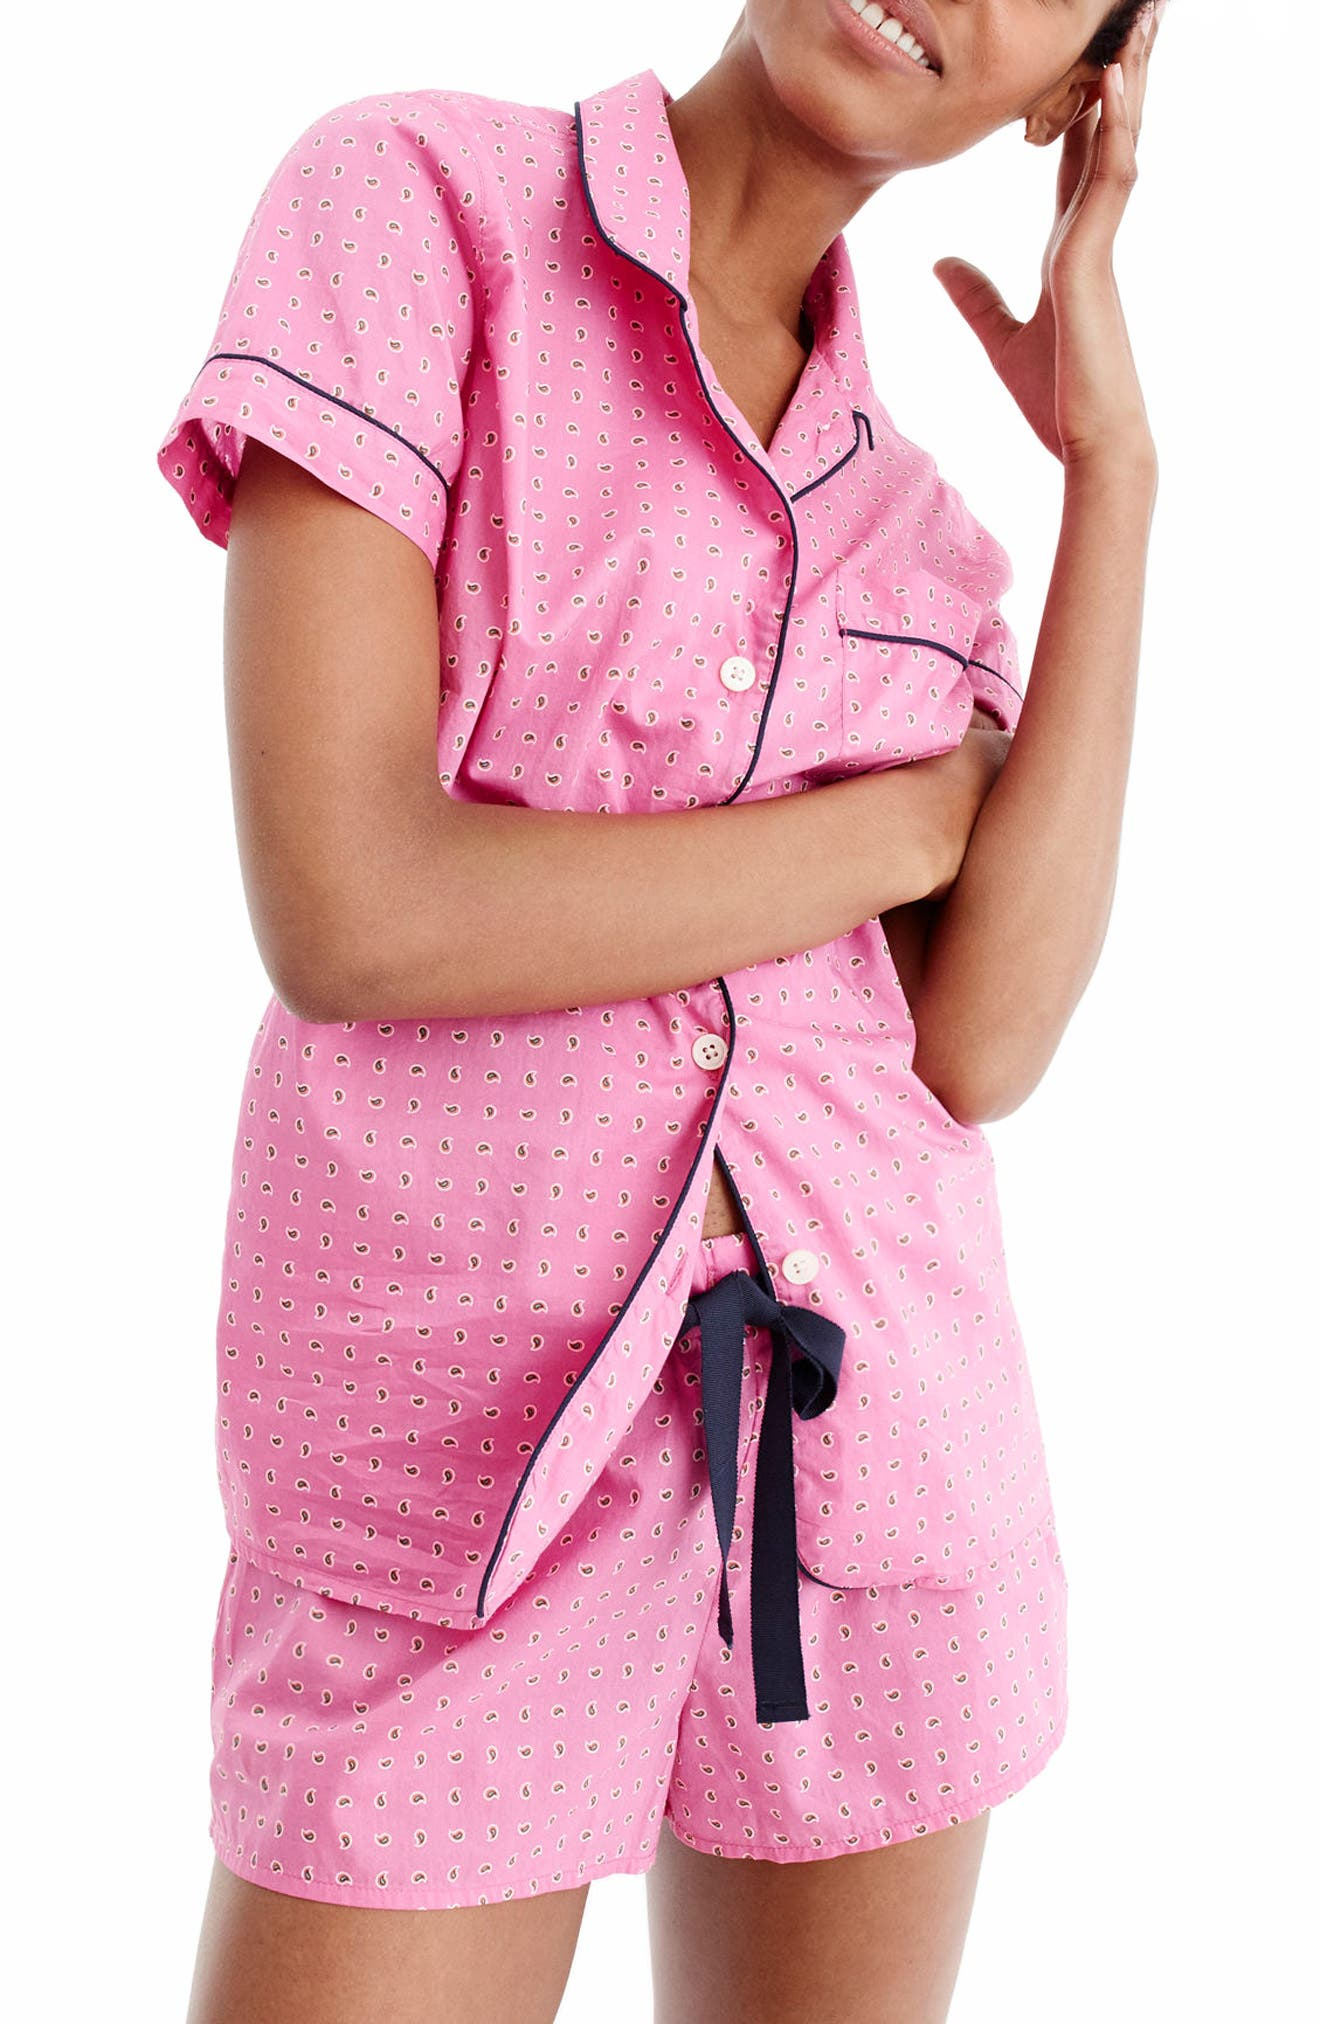 J.Crew Short Cotton Pajamas,                             Main thumbnail 1, color,                             Vivid Fuchsia